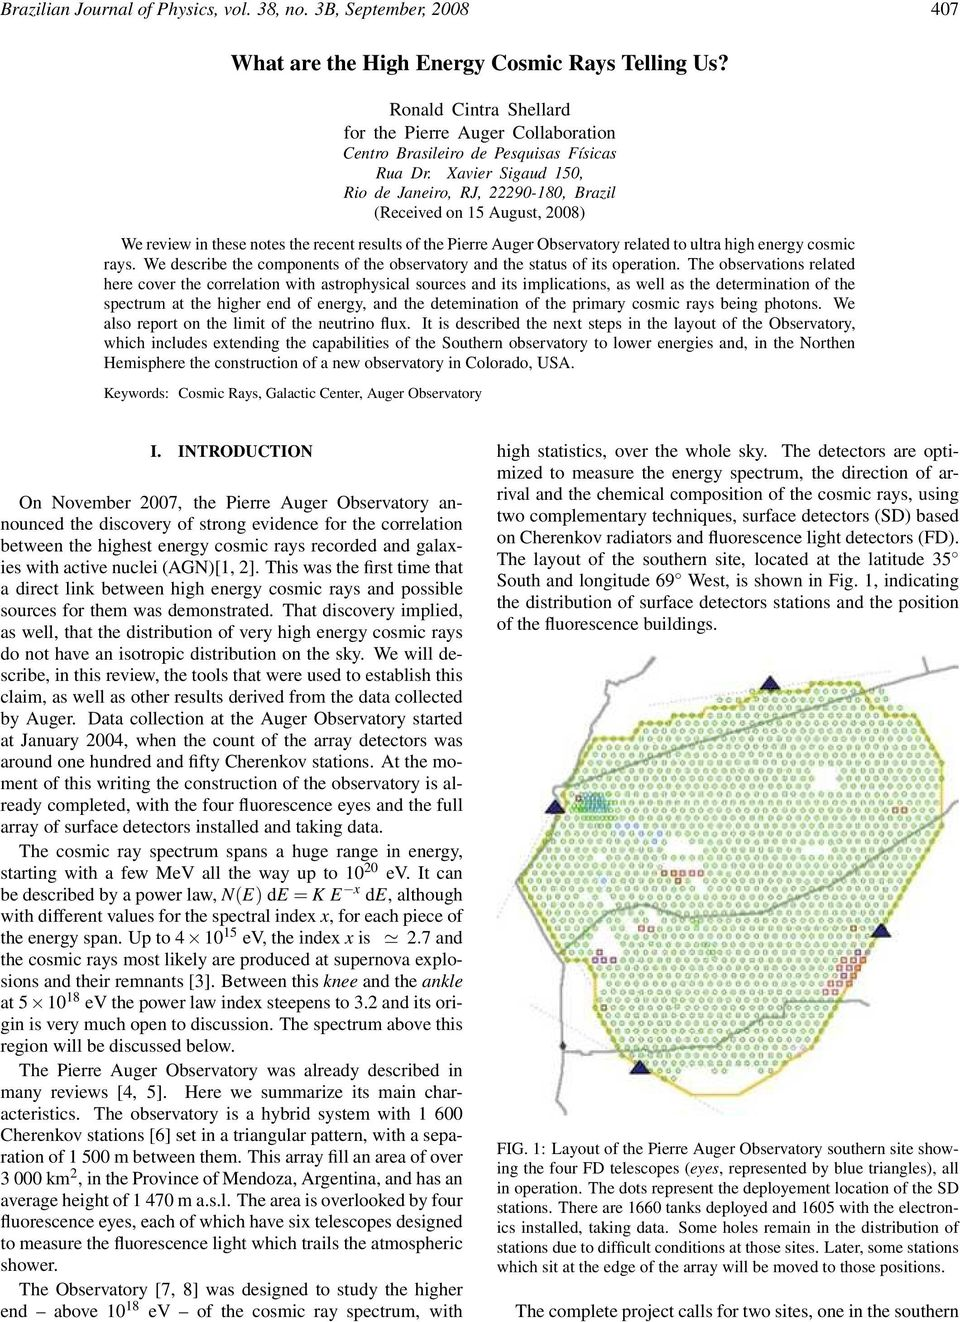 Xavier Sigaud 150, Rio de Janeiro, RJ, 22290-180, Brazil (Received on 15 August, 2008) We review in these notes the recent results of the Pierre Auger Observatory related to ultra high energy cosmic